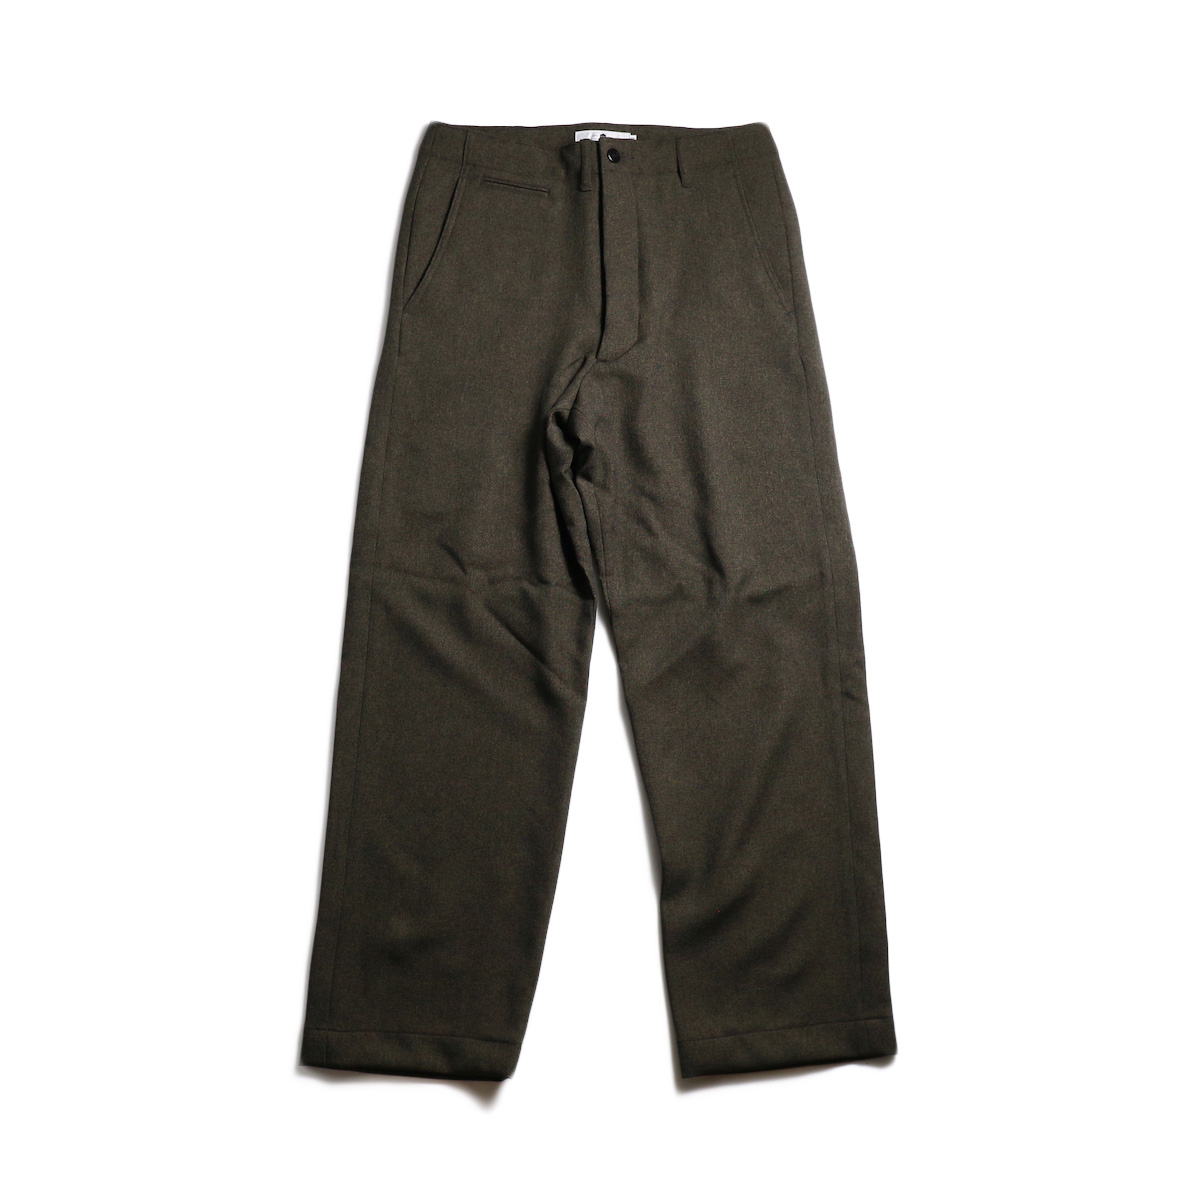 SGGM / M-17 Poly Trouser (Brown Mix)